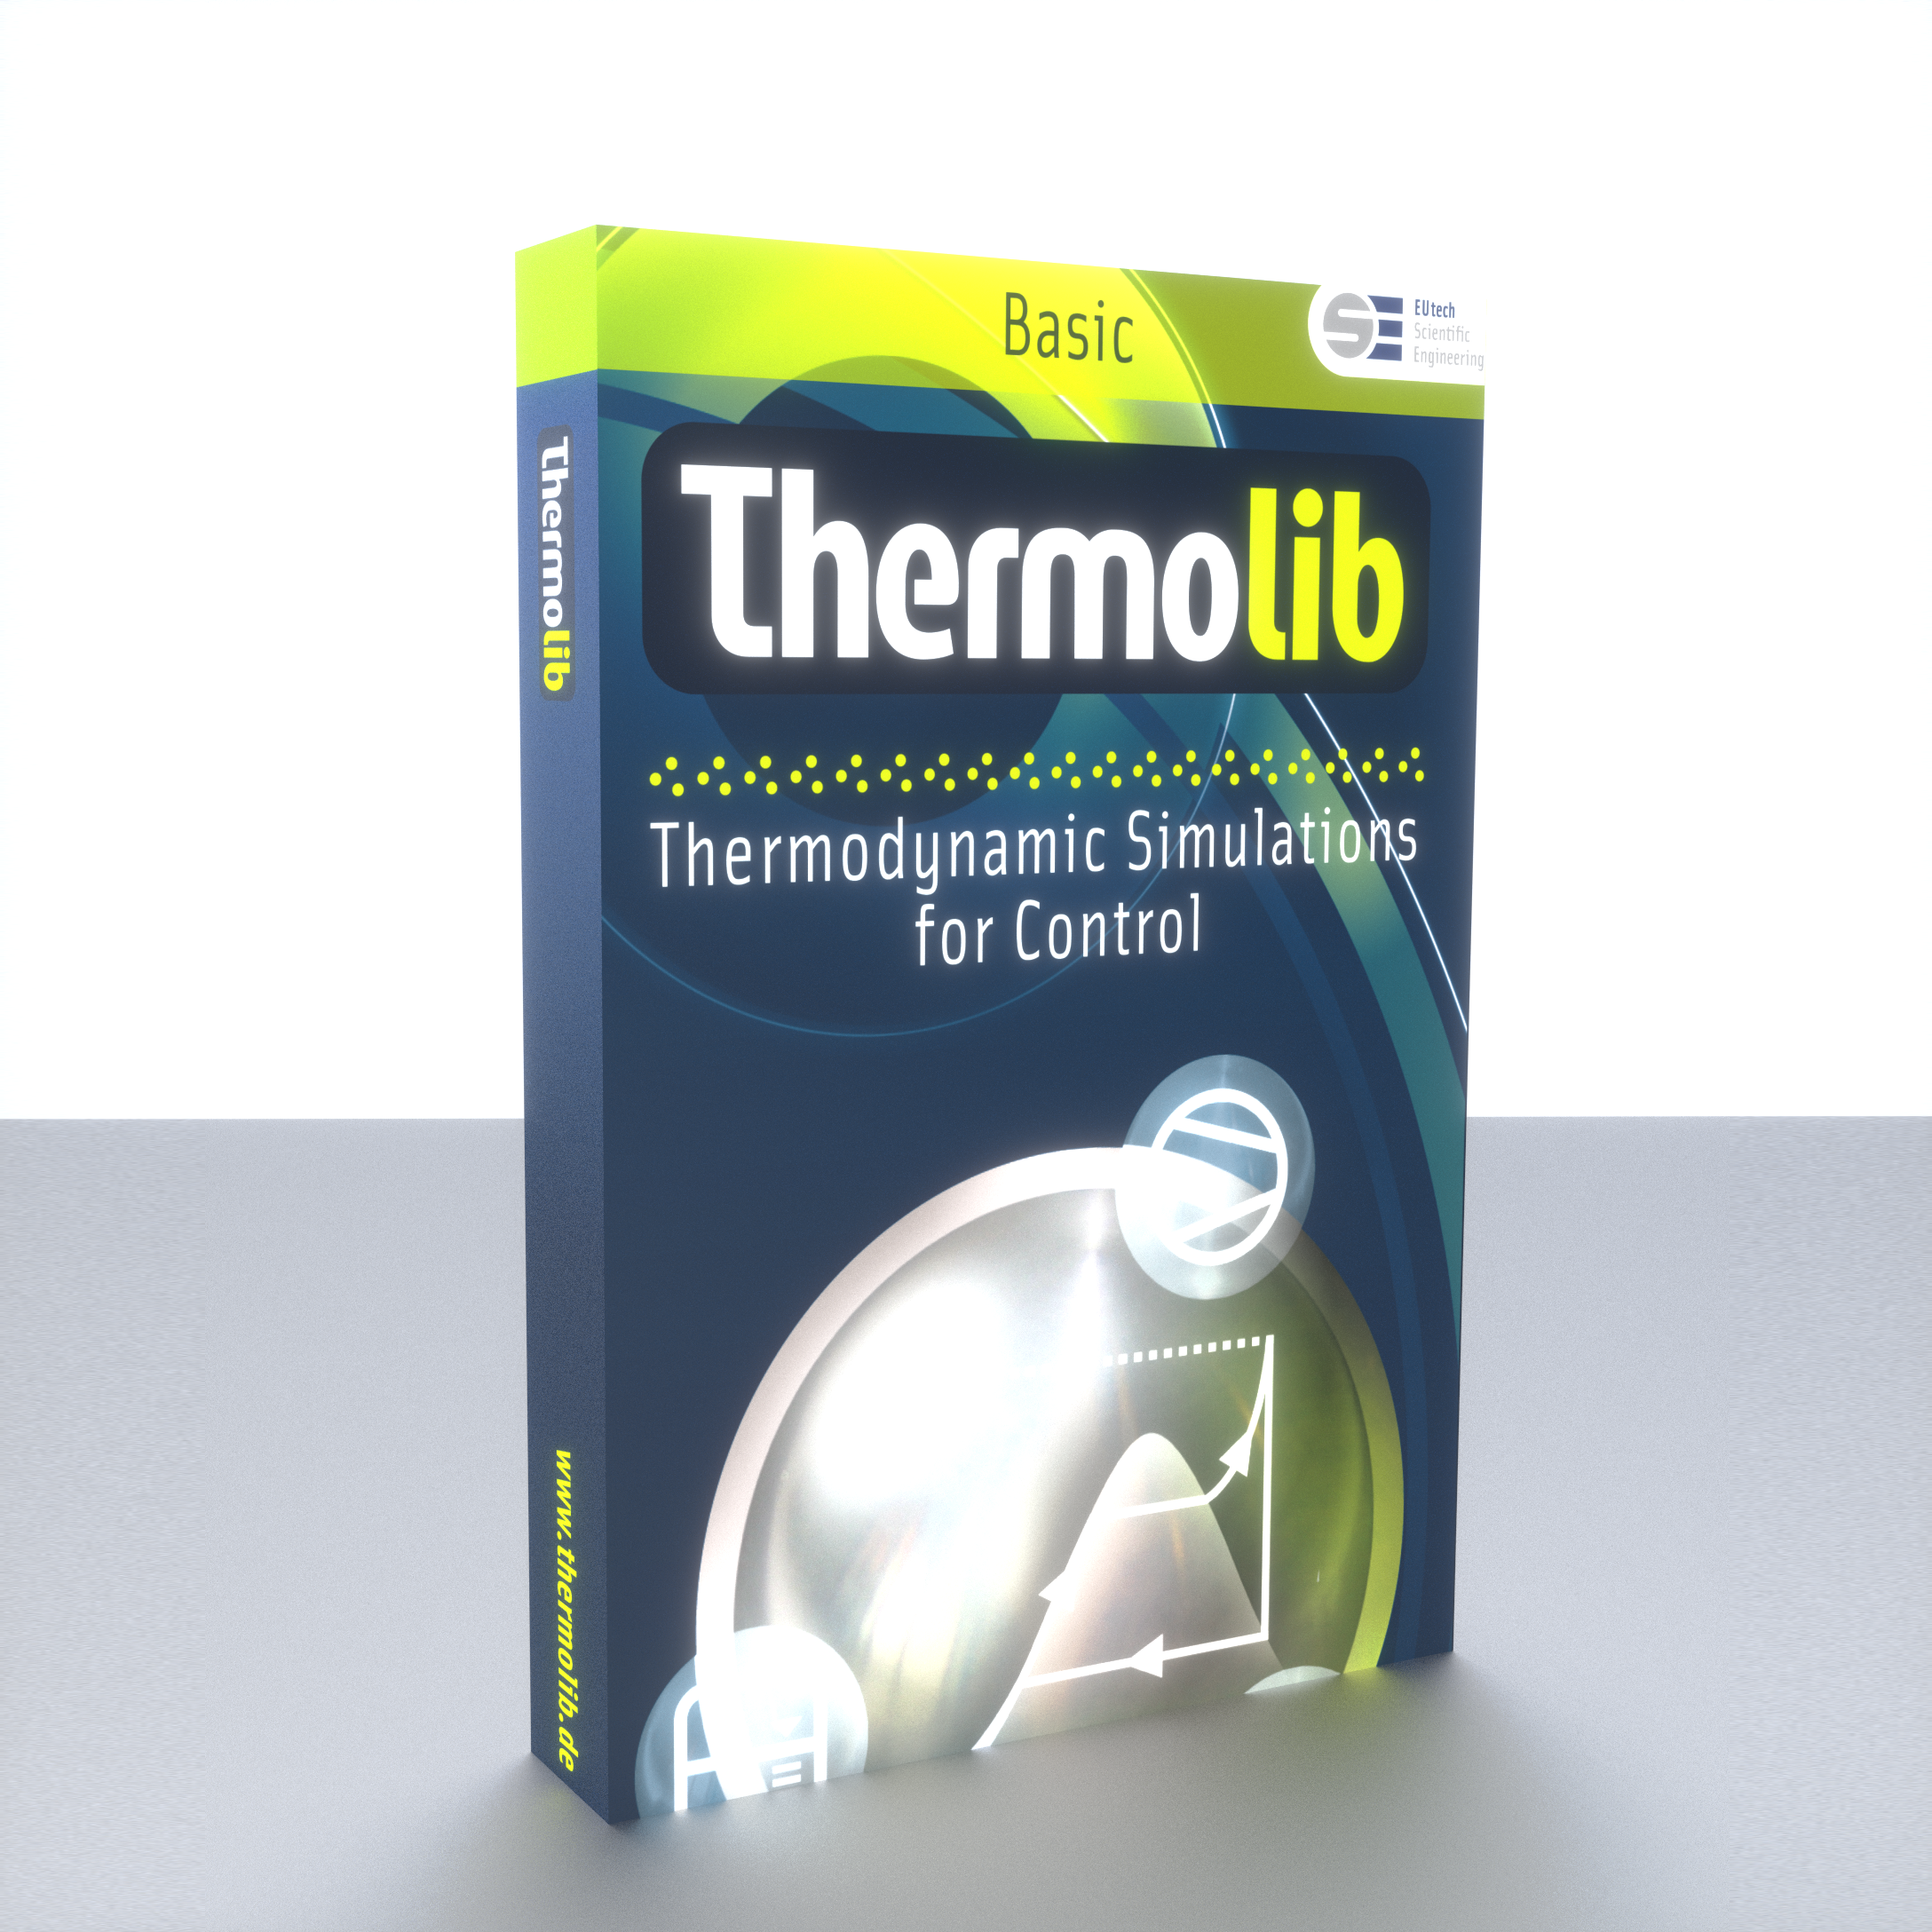 Thermolib Basic